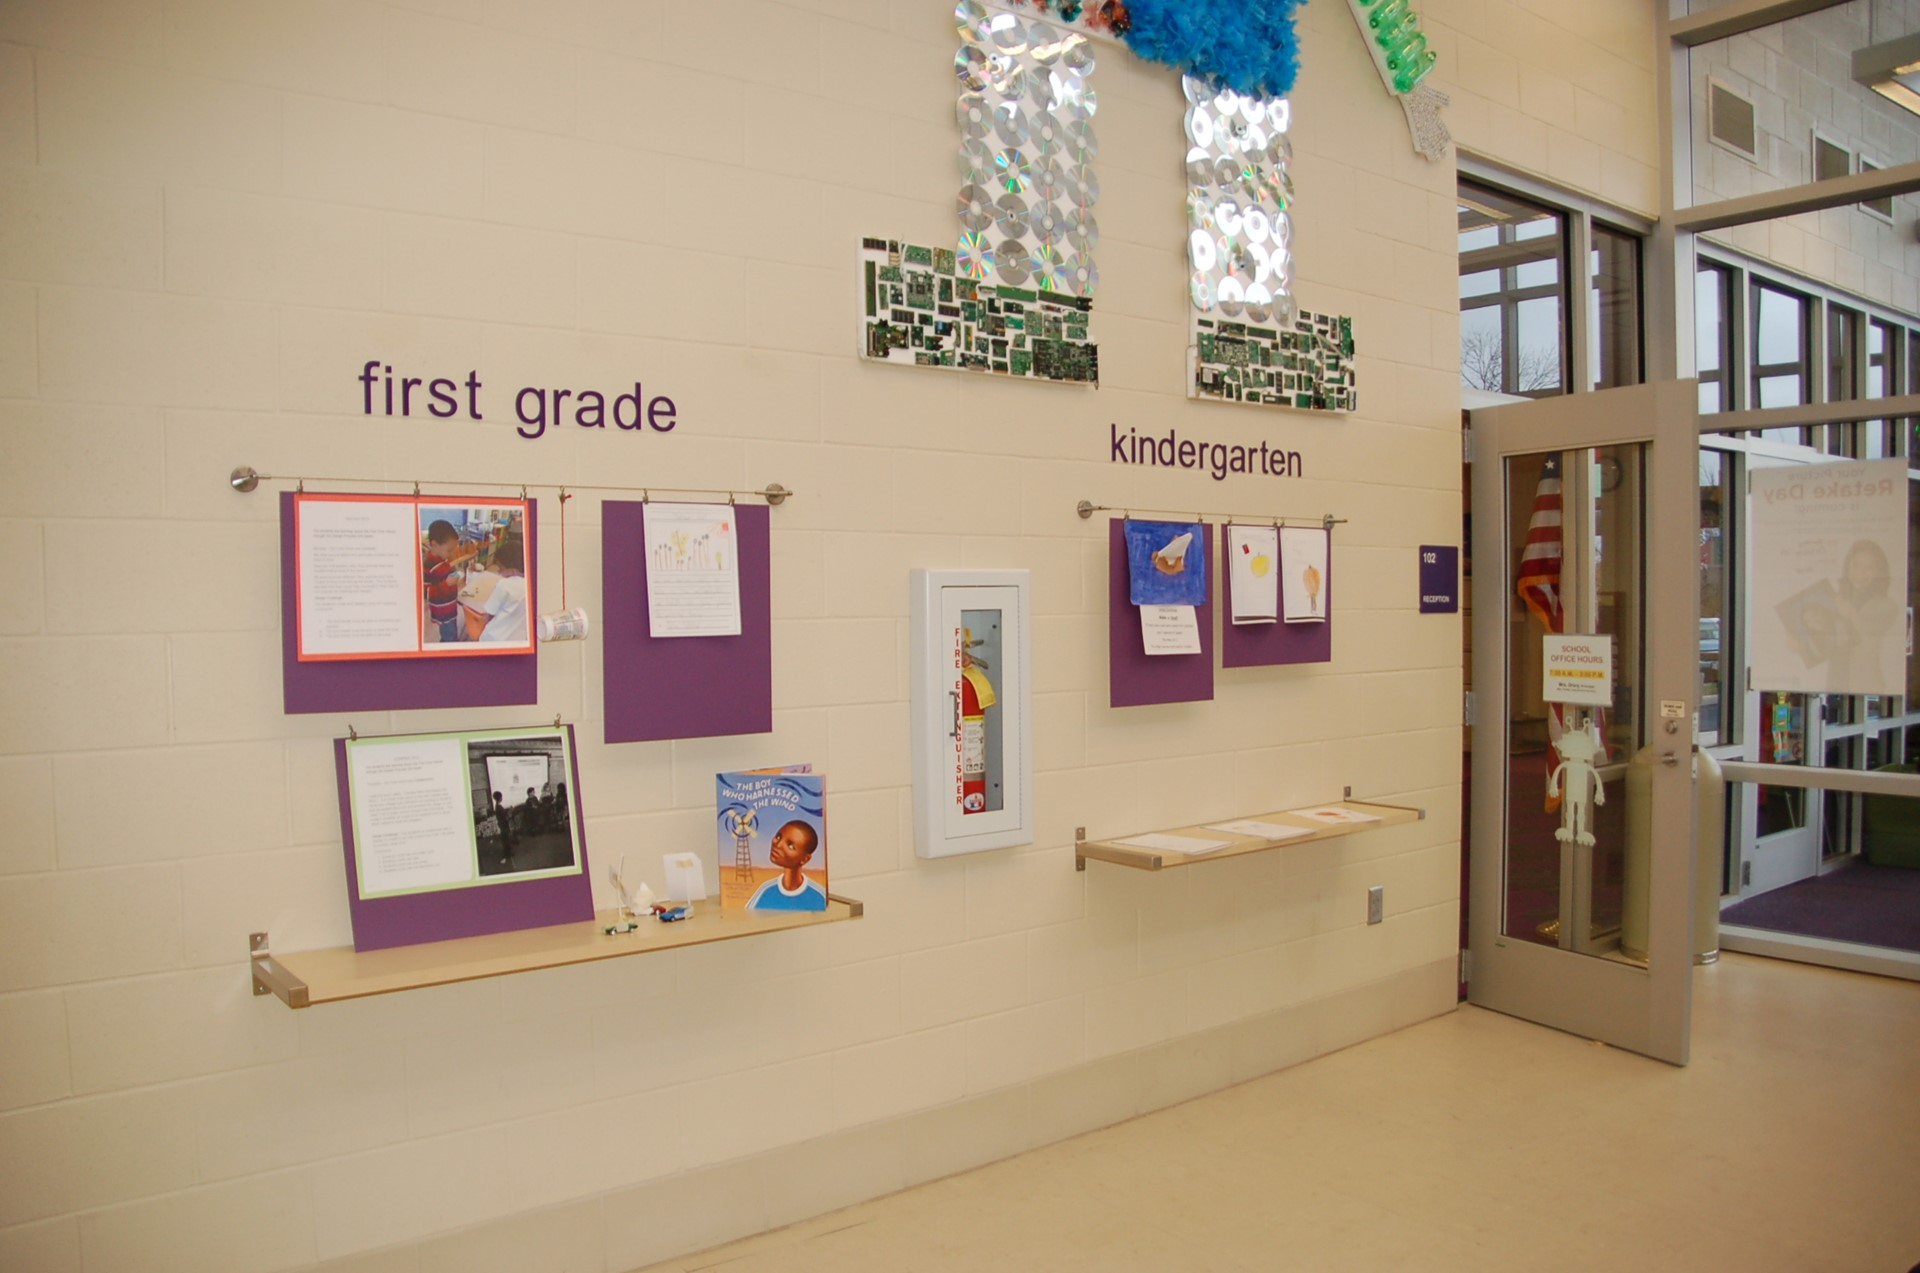 Principal's Gallery showing first grade and kindergarten area.